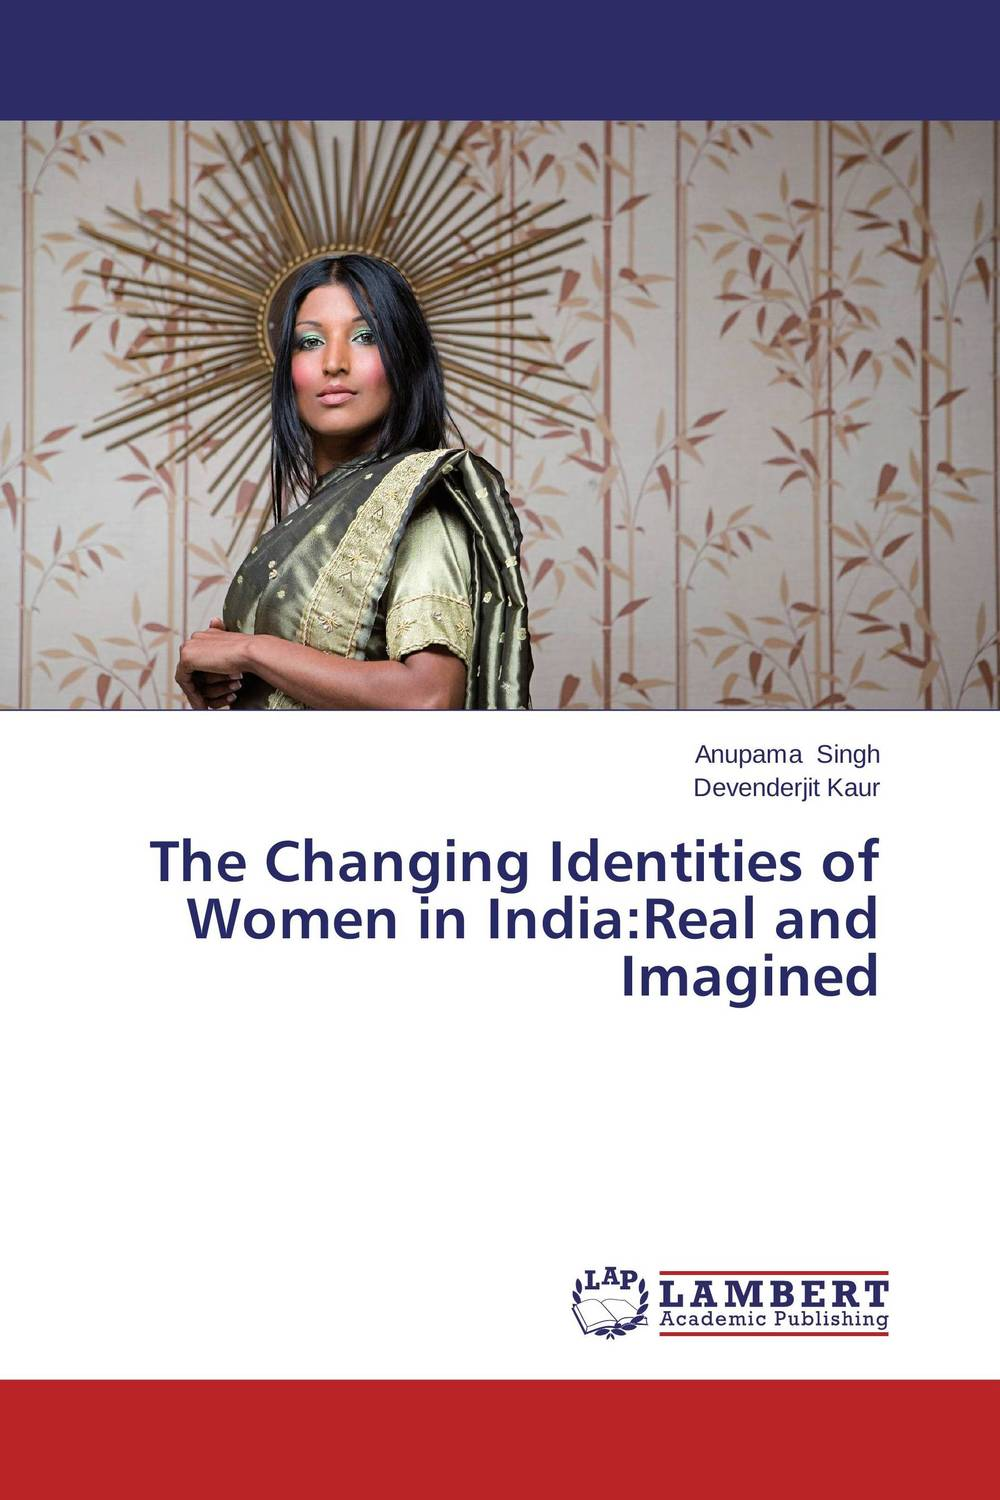 The Changing Identities of Women in India:Real and Imagined women as work force in rural india